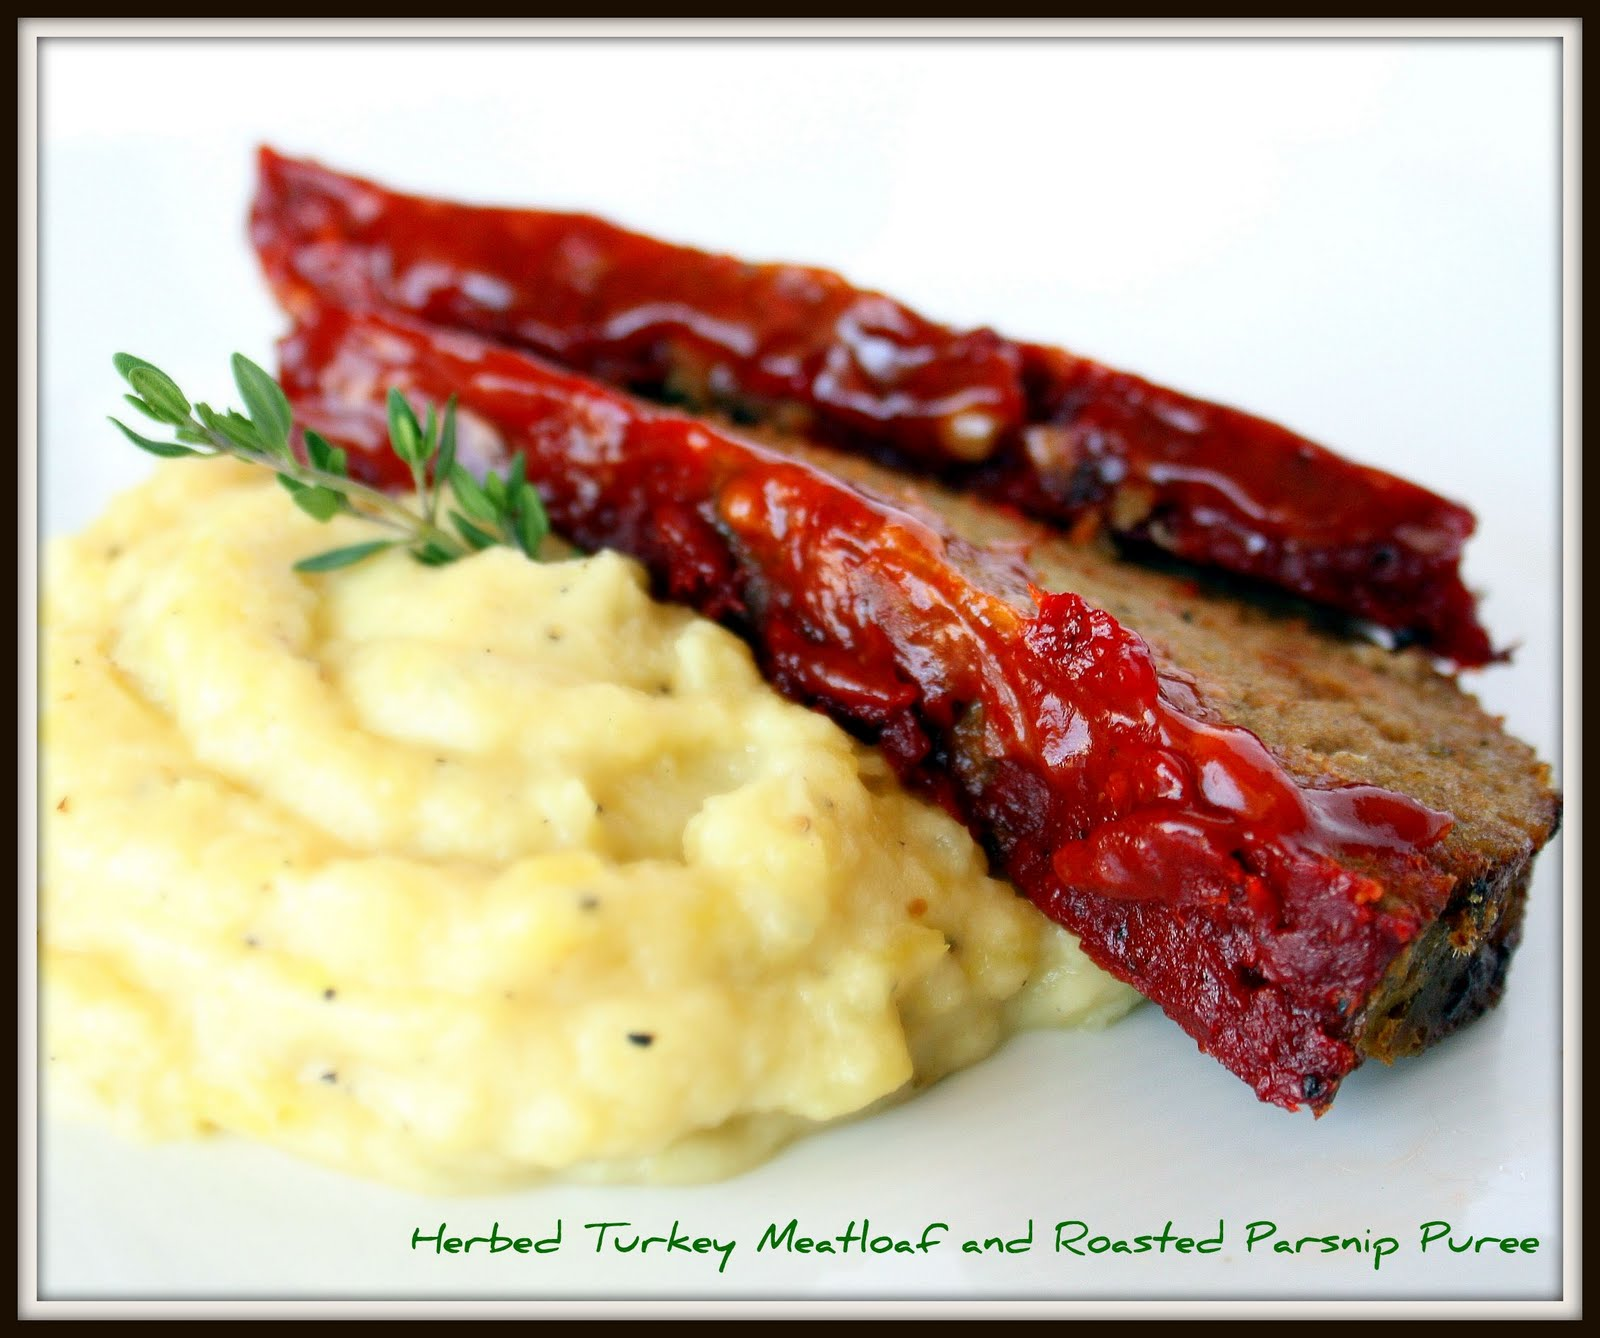 Our Eyes Eat First: Herbed Turkey Meatloaf and Roasted Parsnip Puree